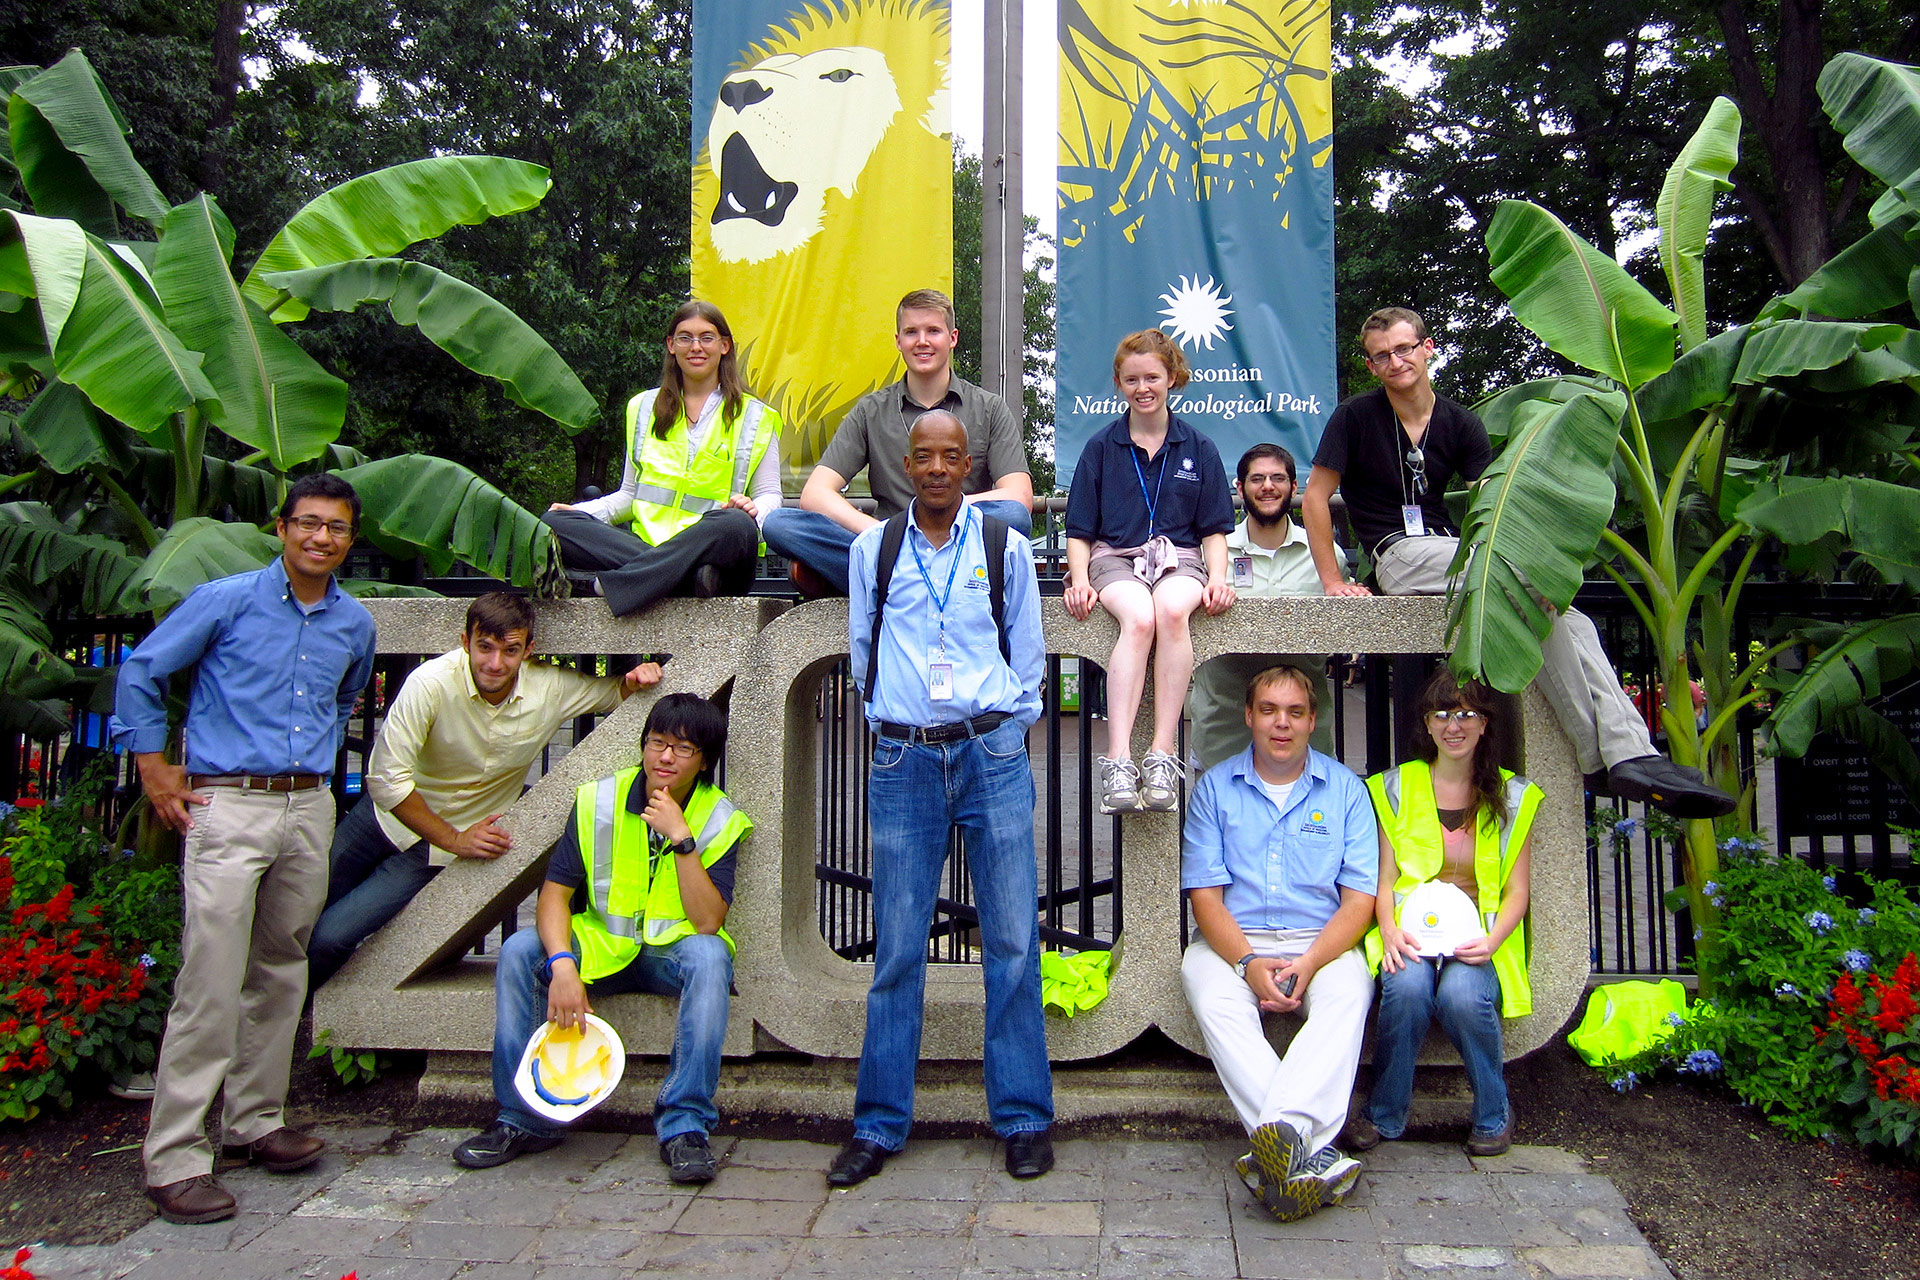 OFMR interns pose in front of the zoo